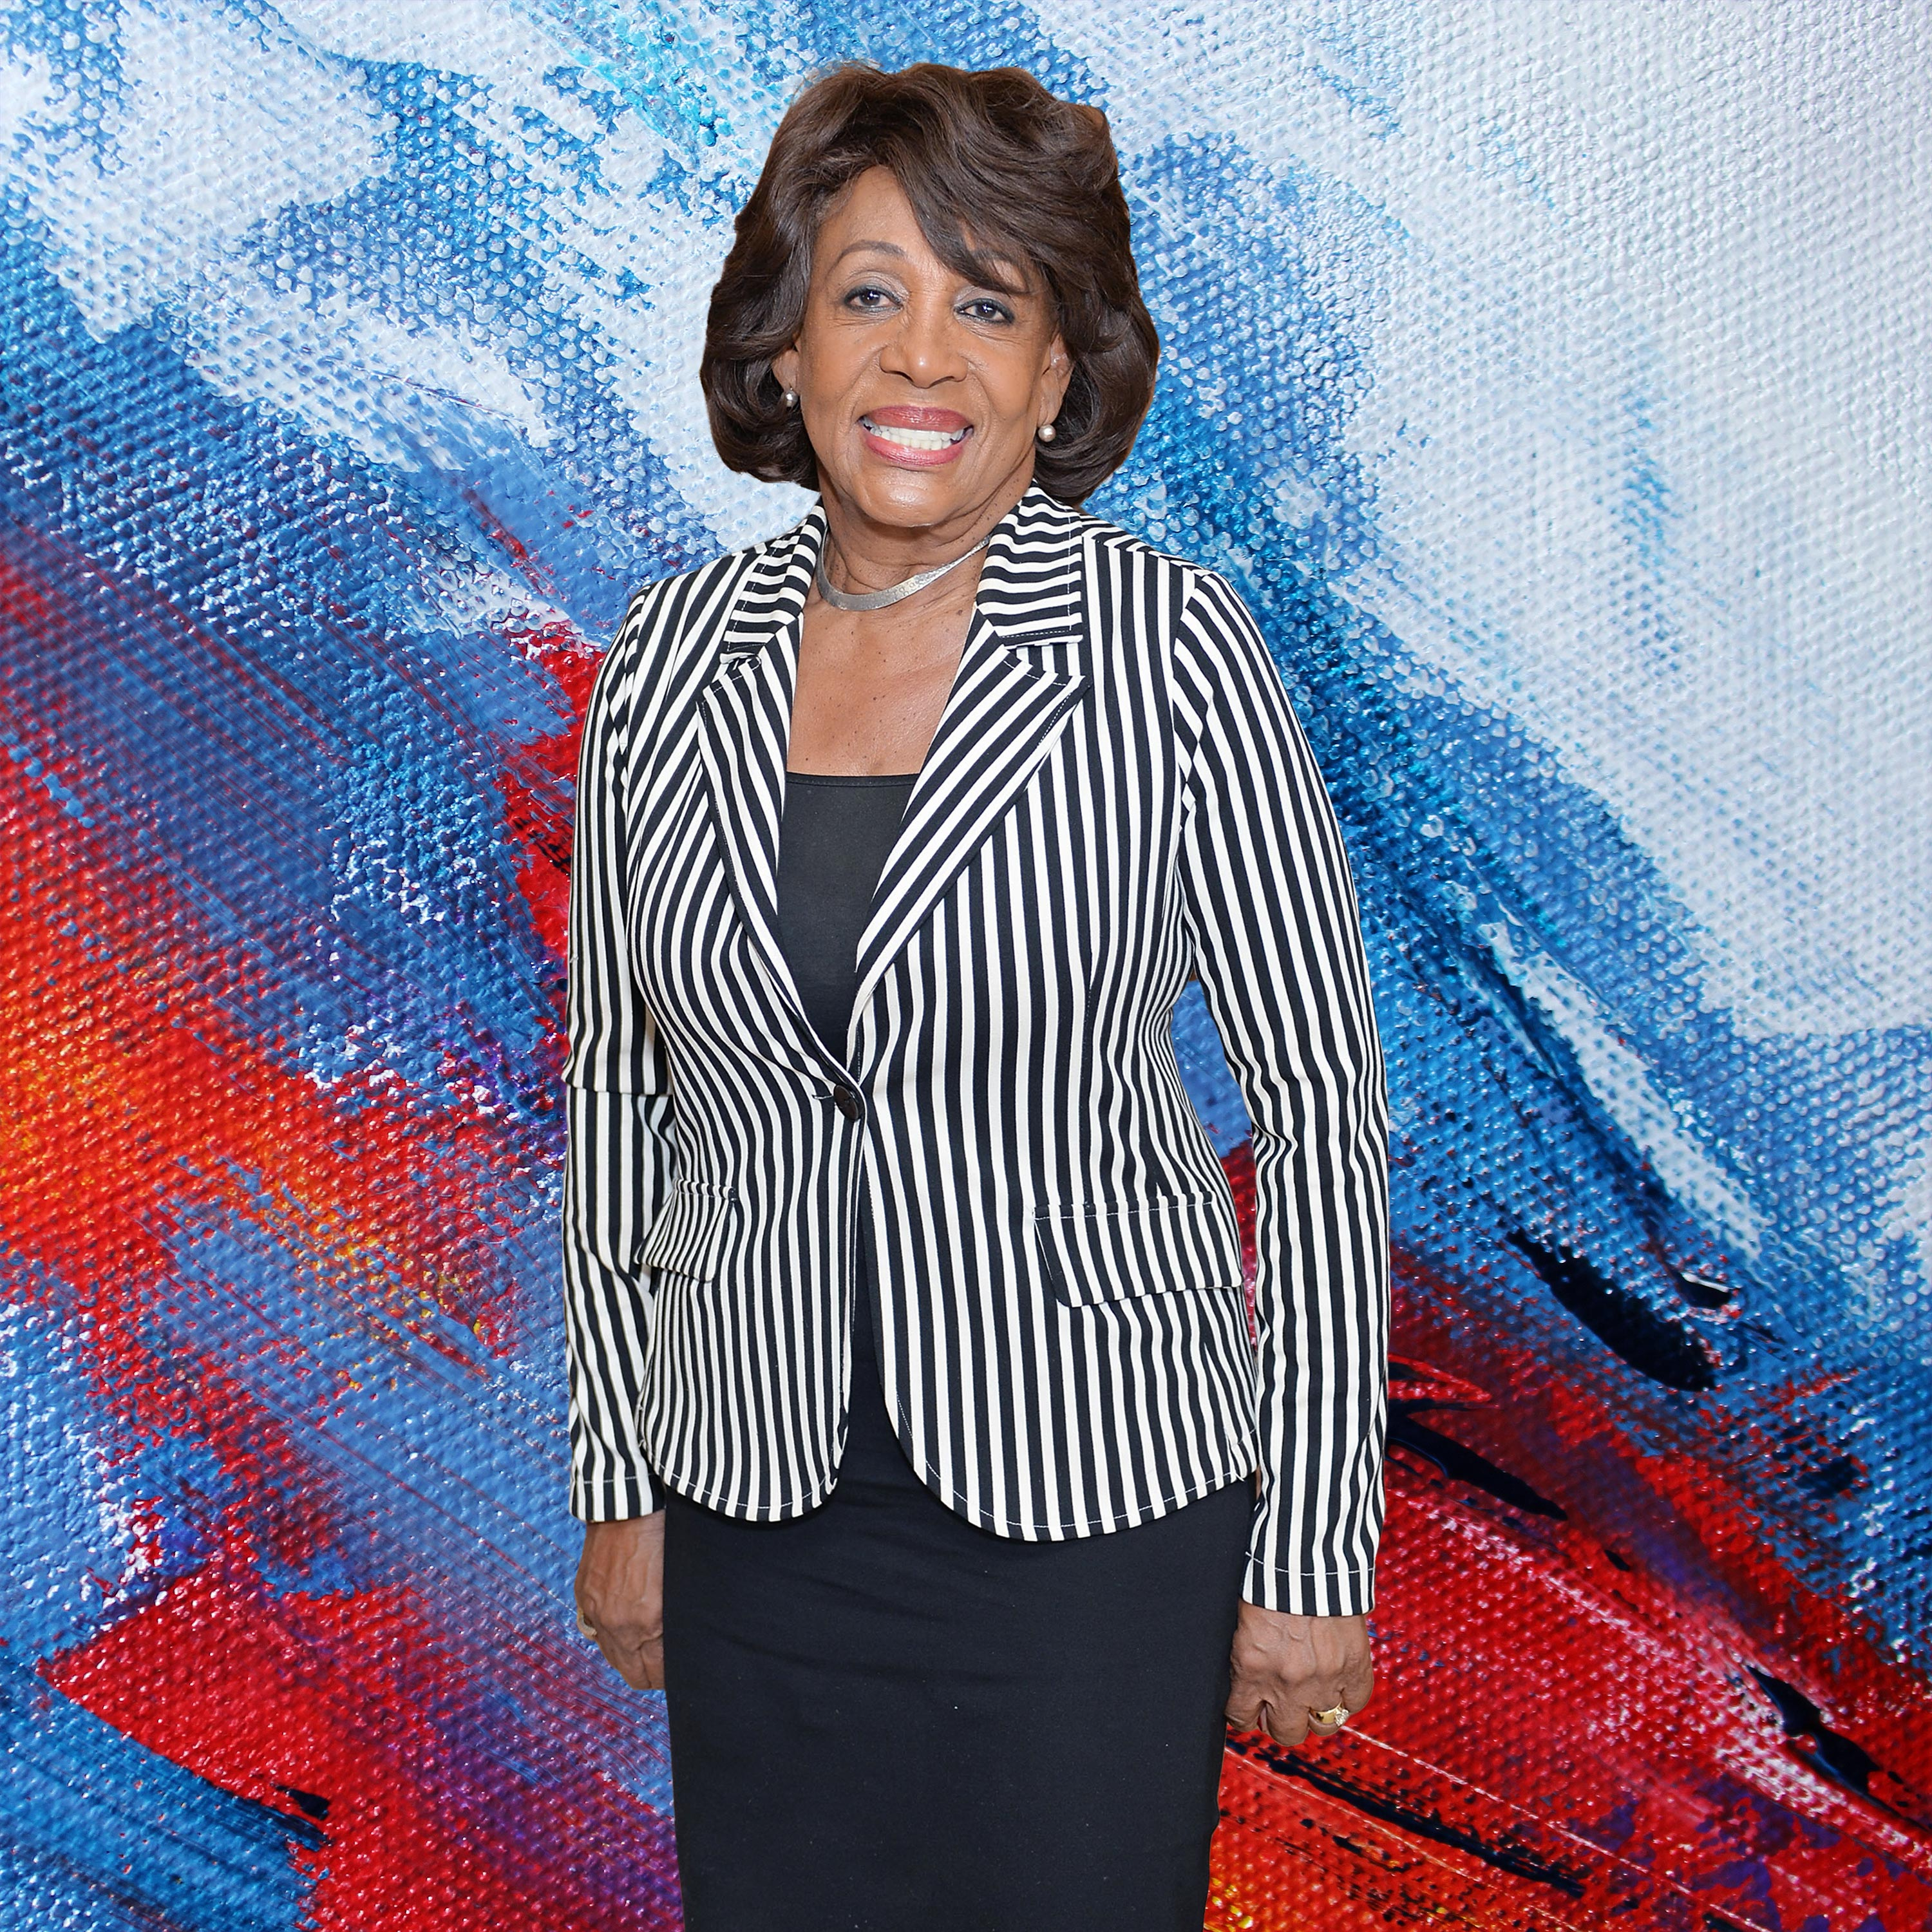 A GOP Congressman Tried to Come For Rep. Maxine Waters, And She Let Him Have It